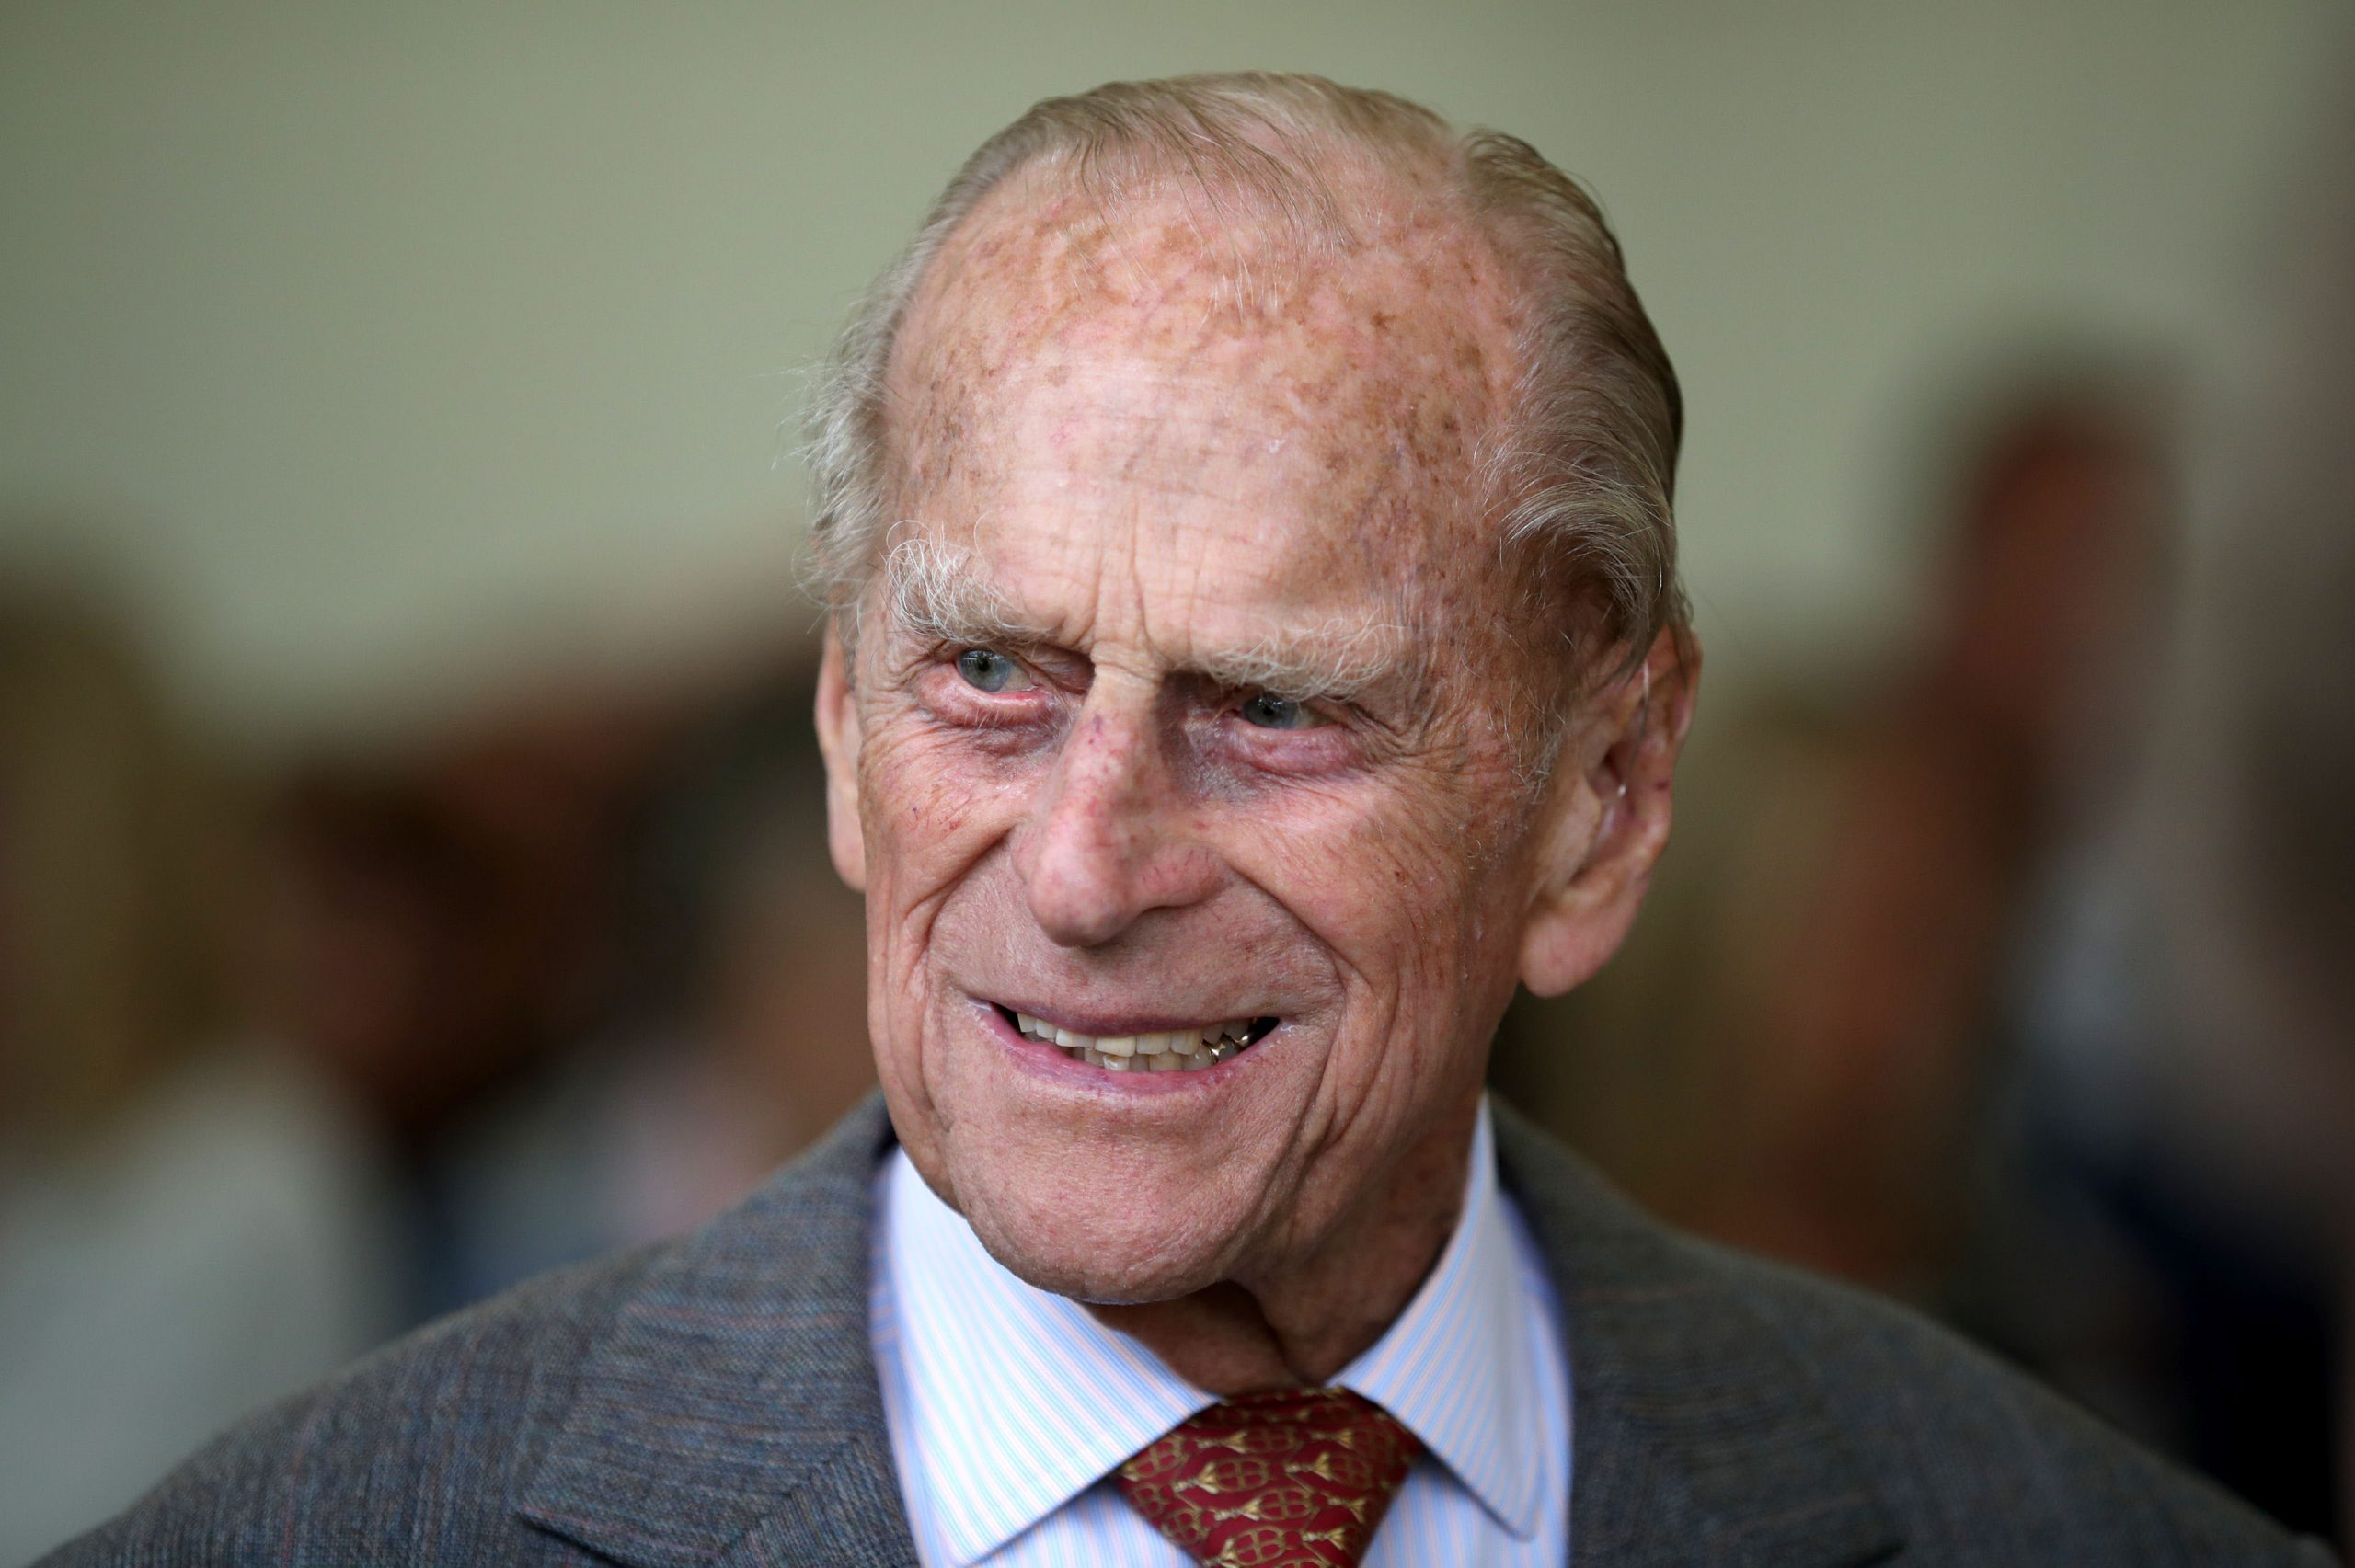 Prince Philip, the husband of British monarch Queen Elizabeth II, has died at 99, Buckingham Palace announced